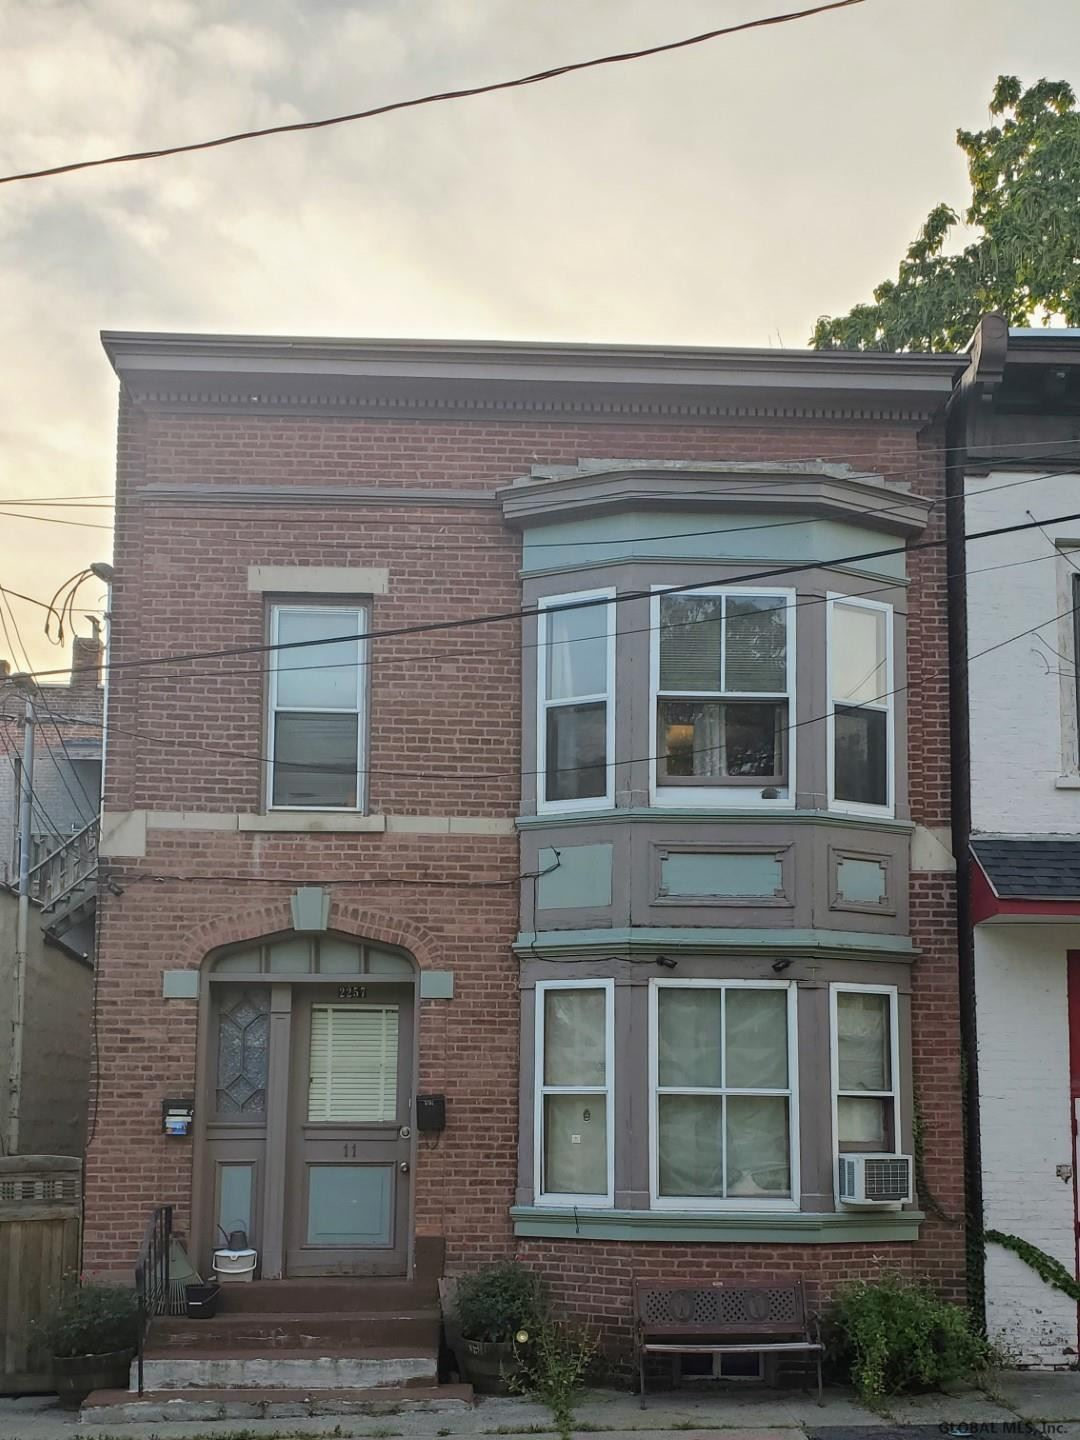 11 CPL WILLIAM A DICKERSON PL, Troy, NY 12180 - #: 202127740